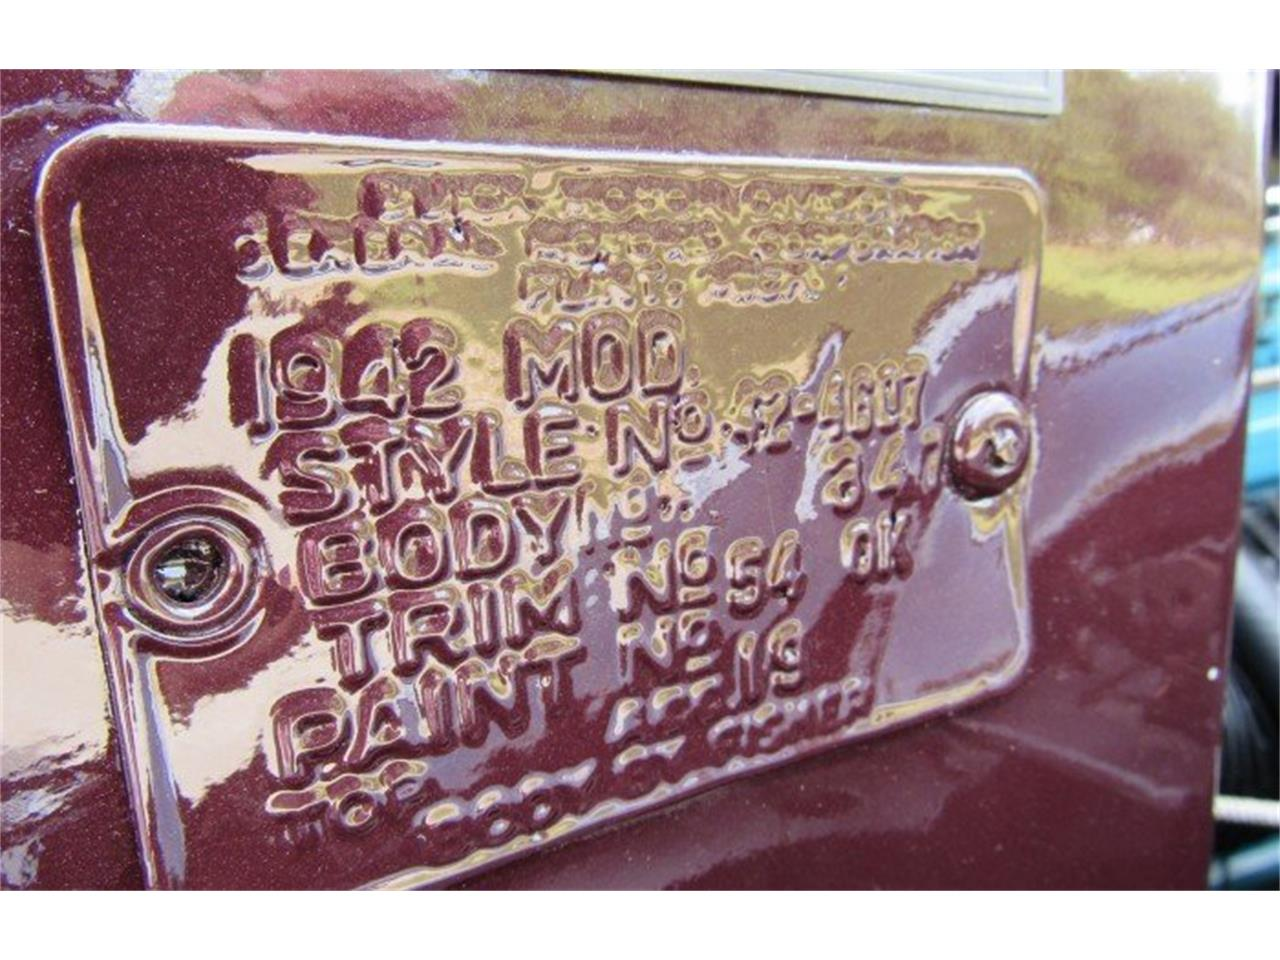 Large Picture of 1942 Buick Century located in Florida Auction Vehicle - PH14